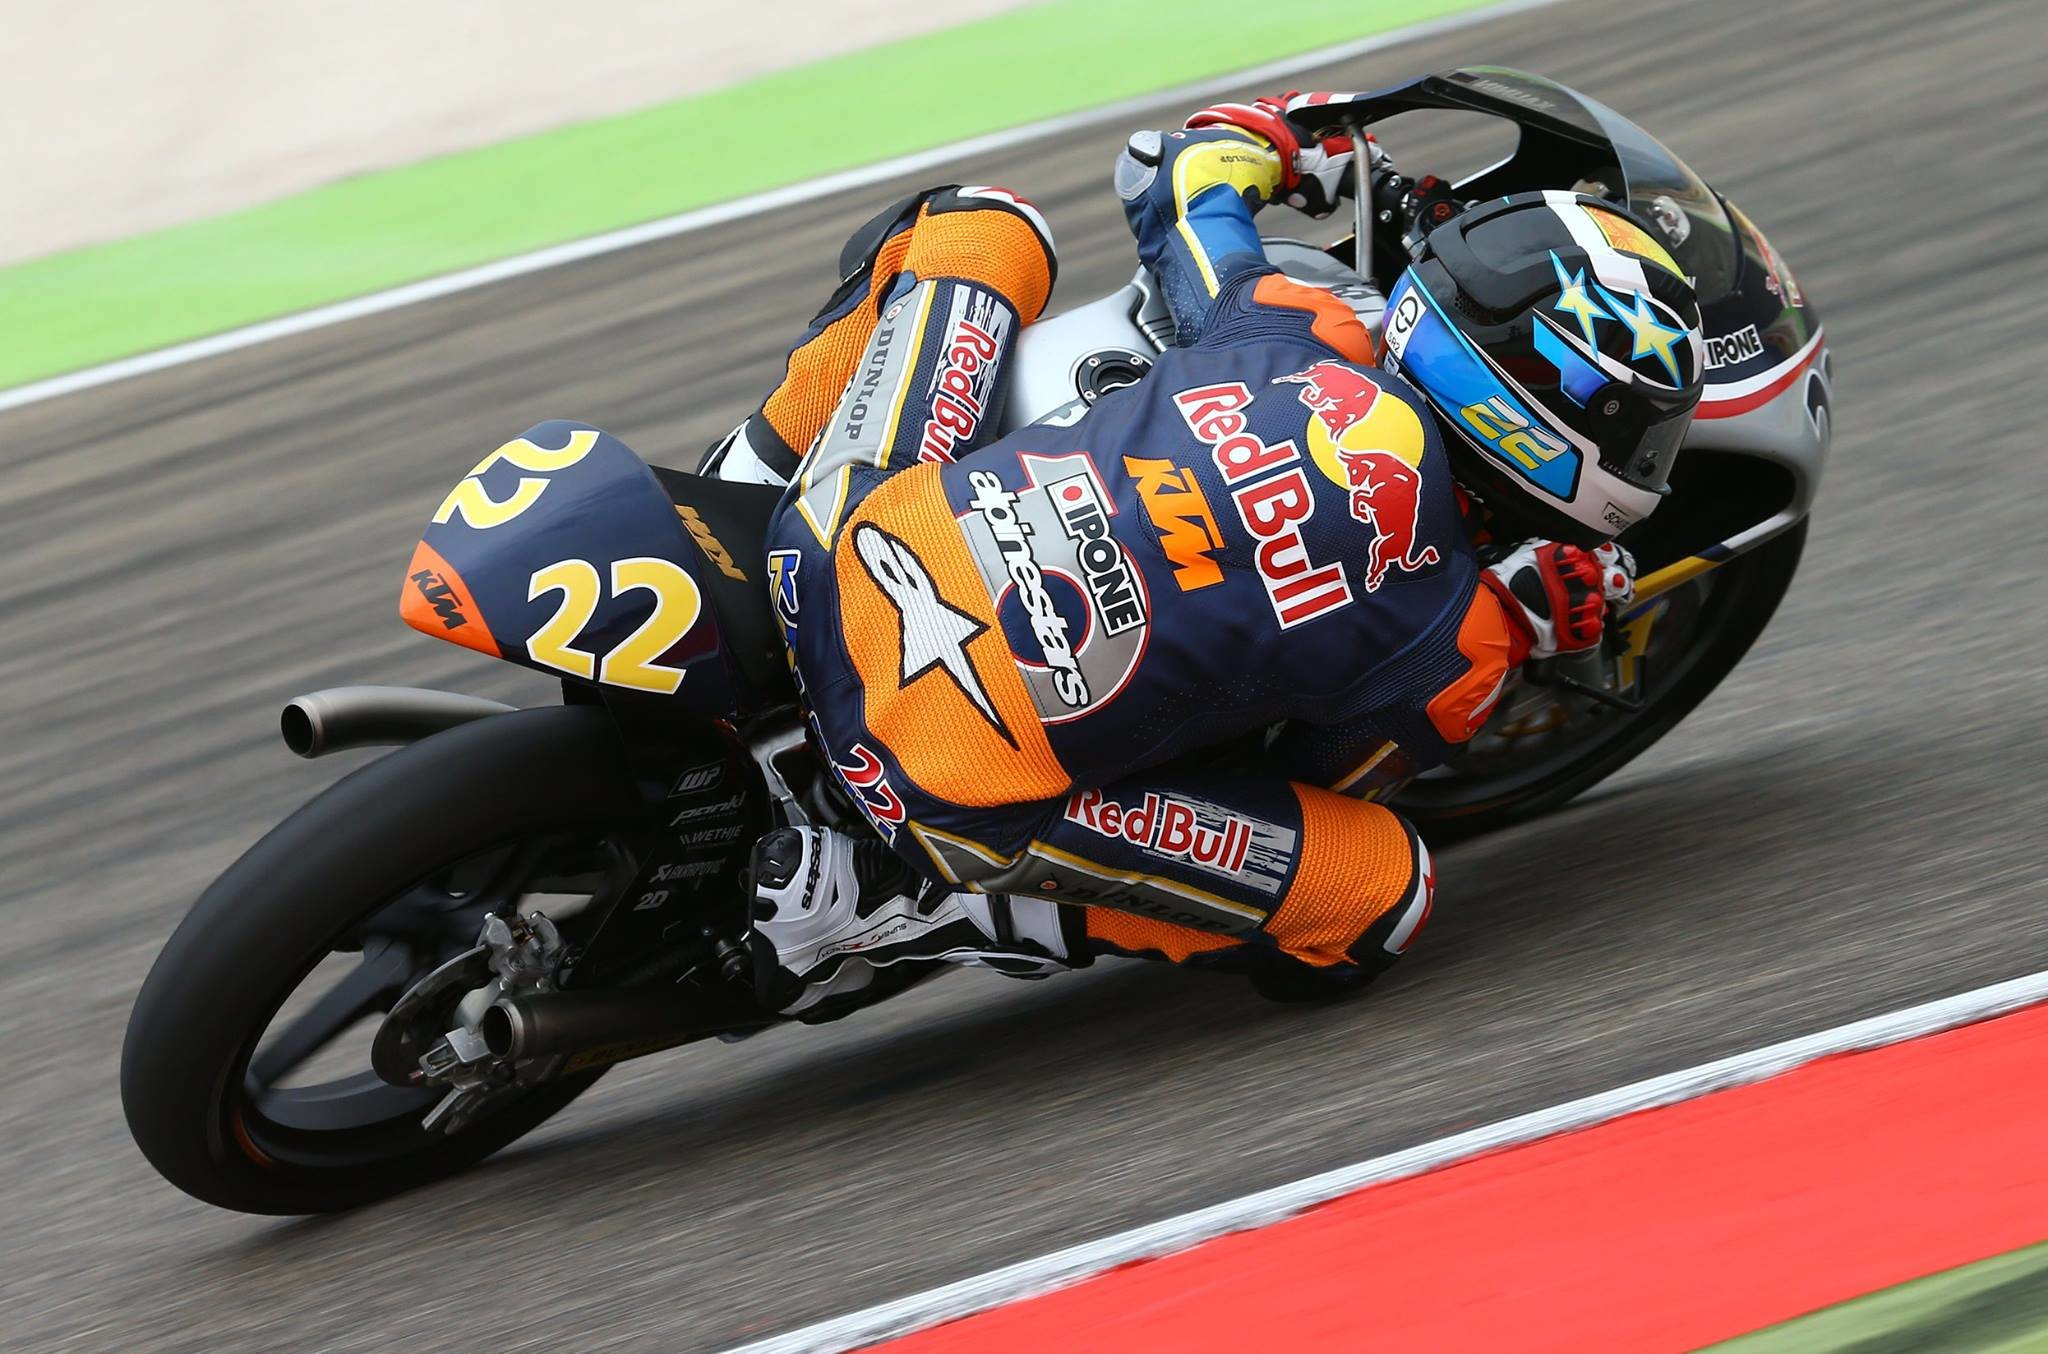 KALININ MADE SUCCESSFUL FINAL RACES OF MOTOGP ROOKIES CUP 2016